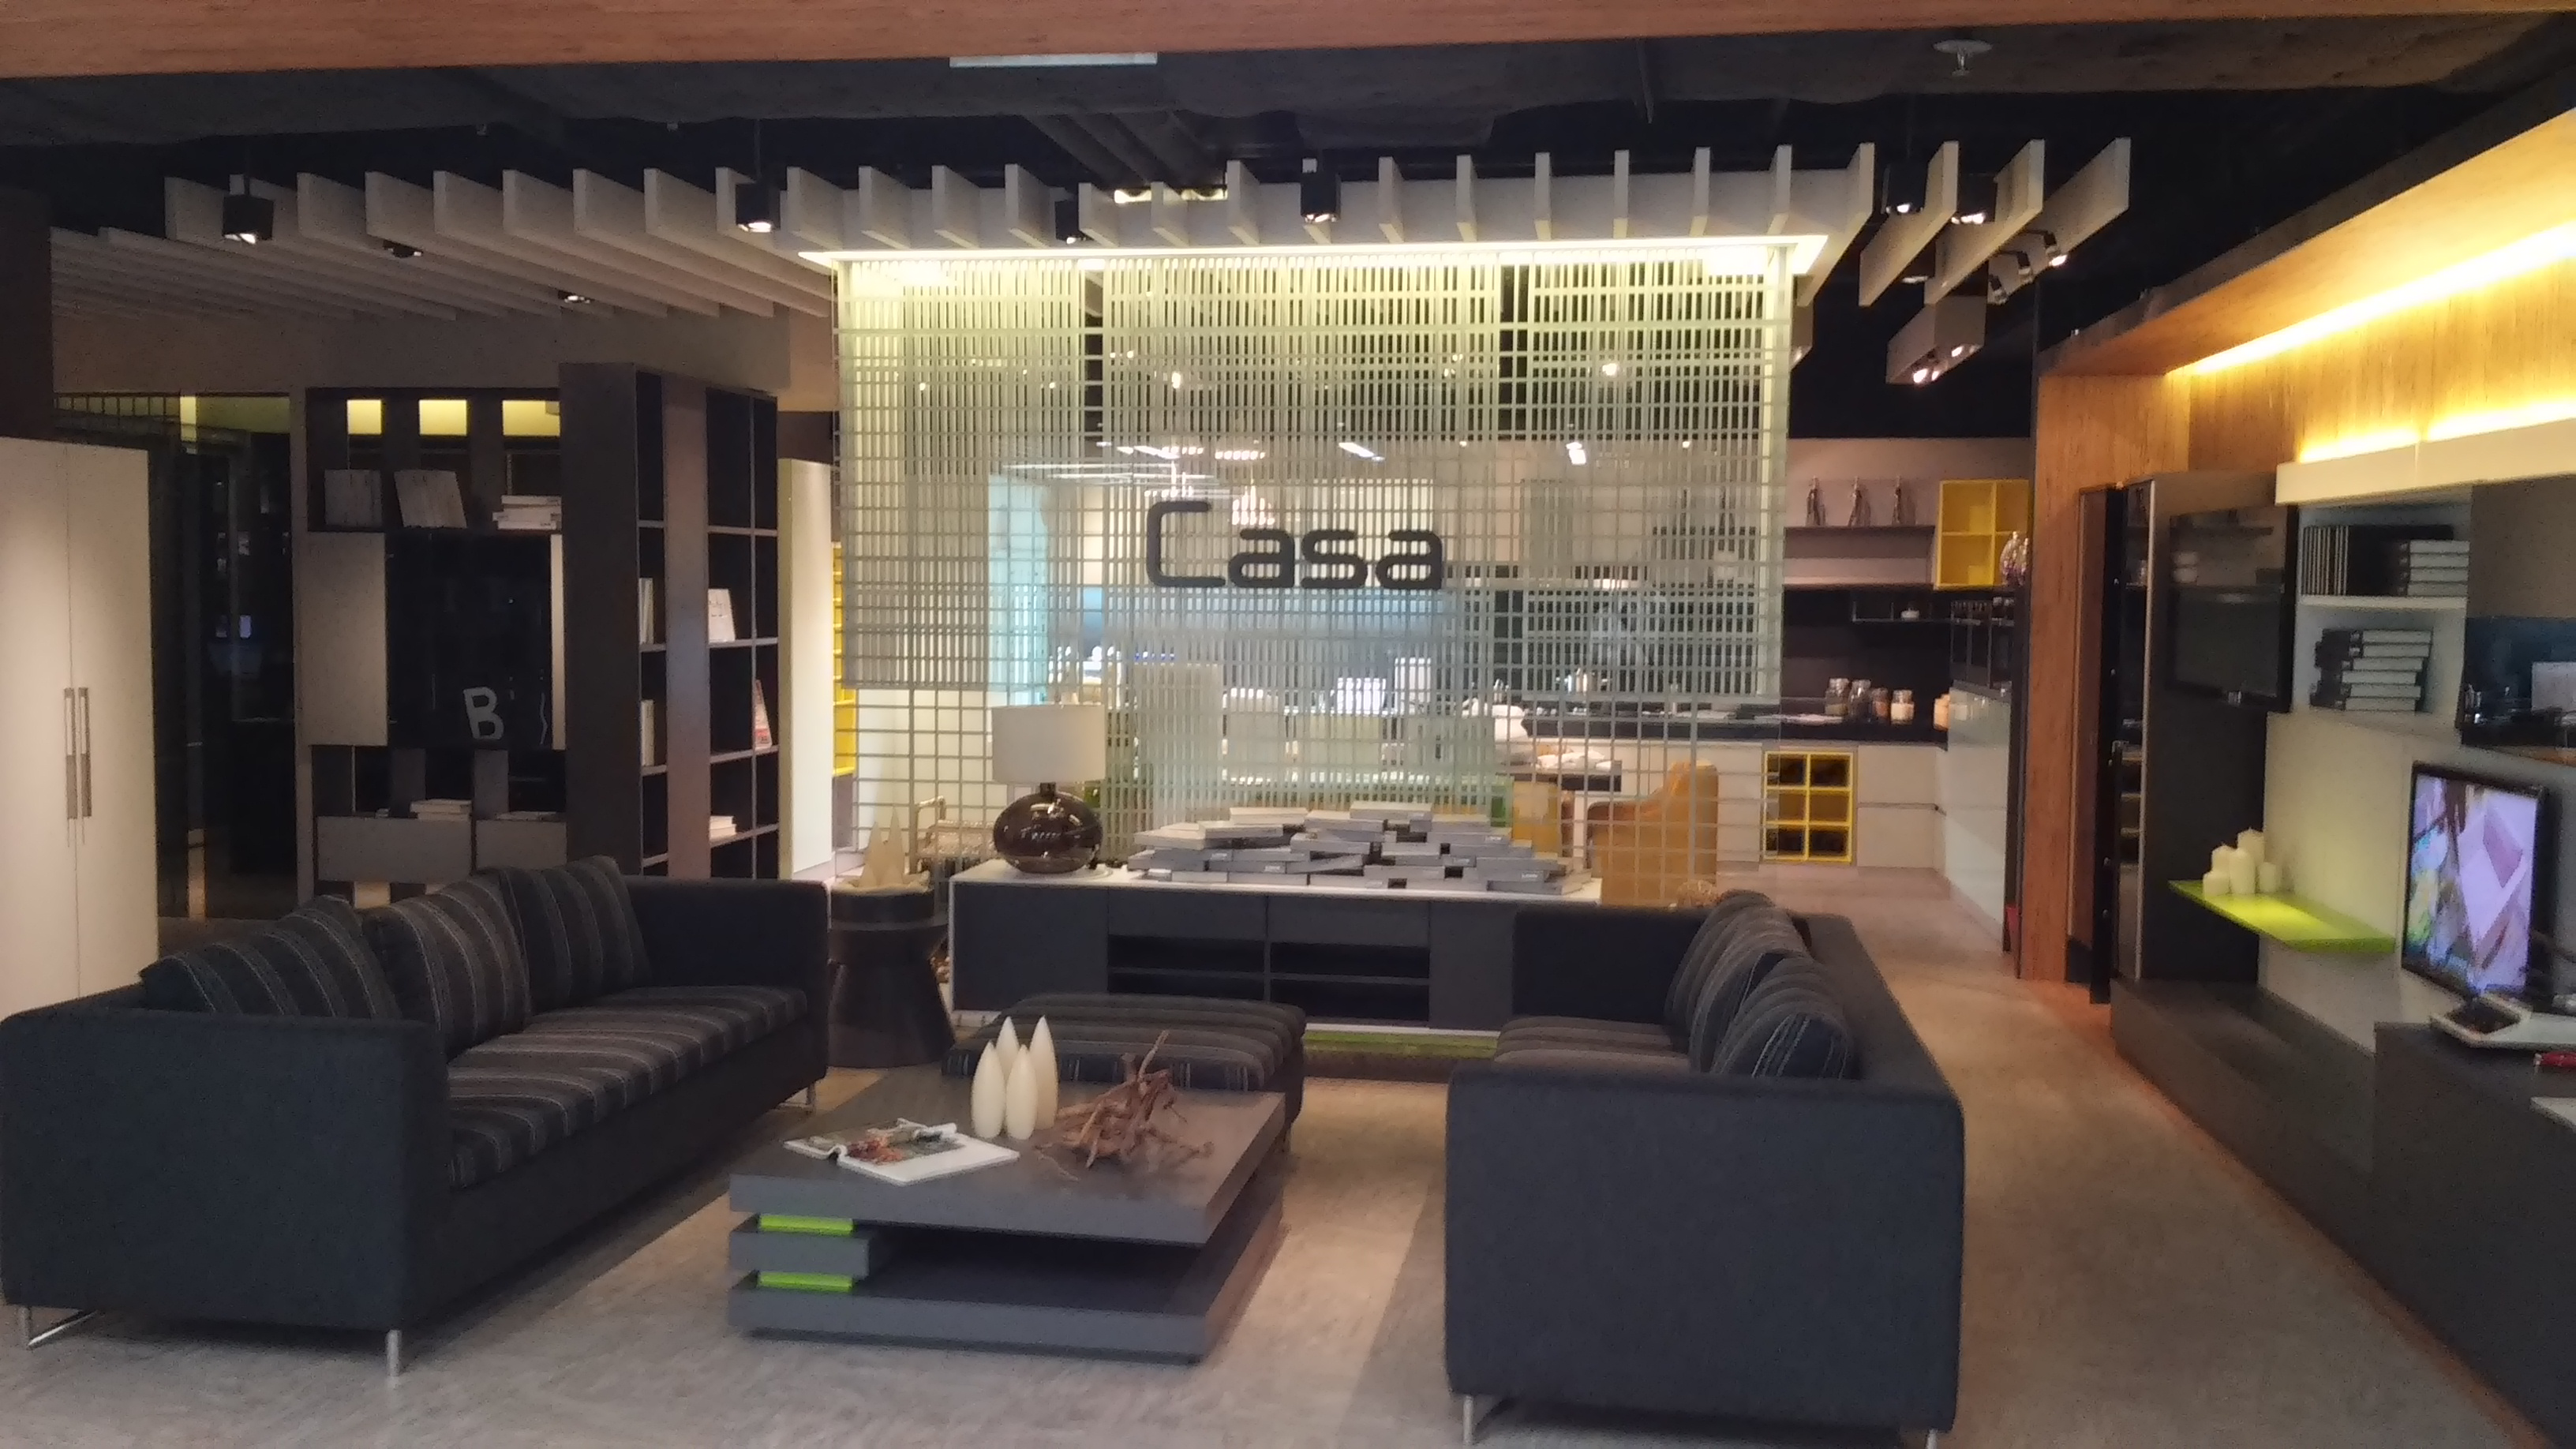 File Hk Kln Bay Emax Home Shopping Mall Furniture Shop Casa Interior Nov 2014